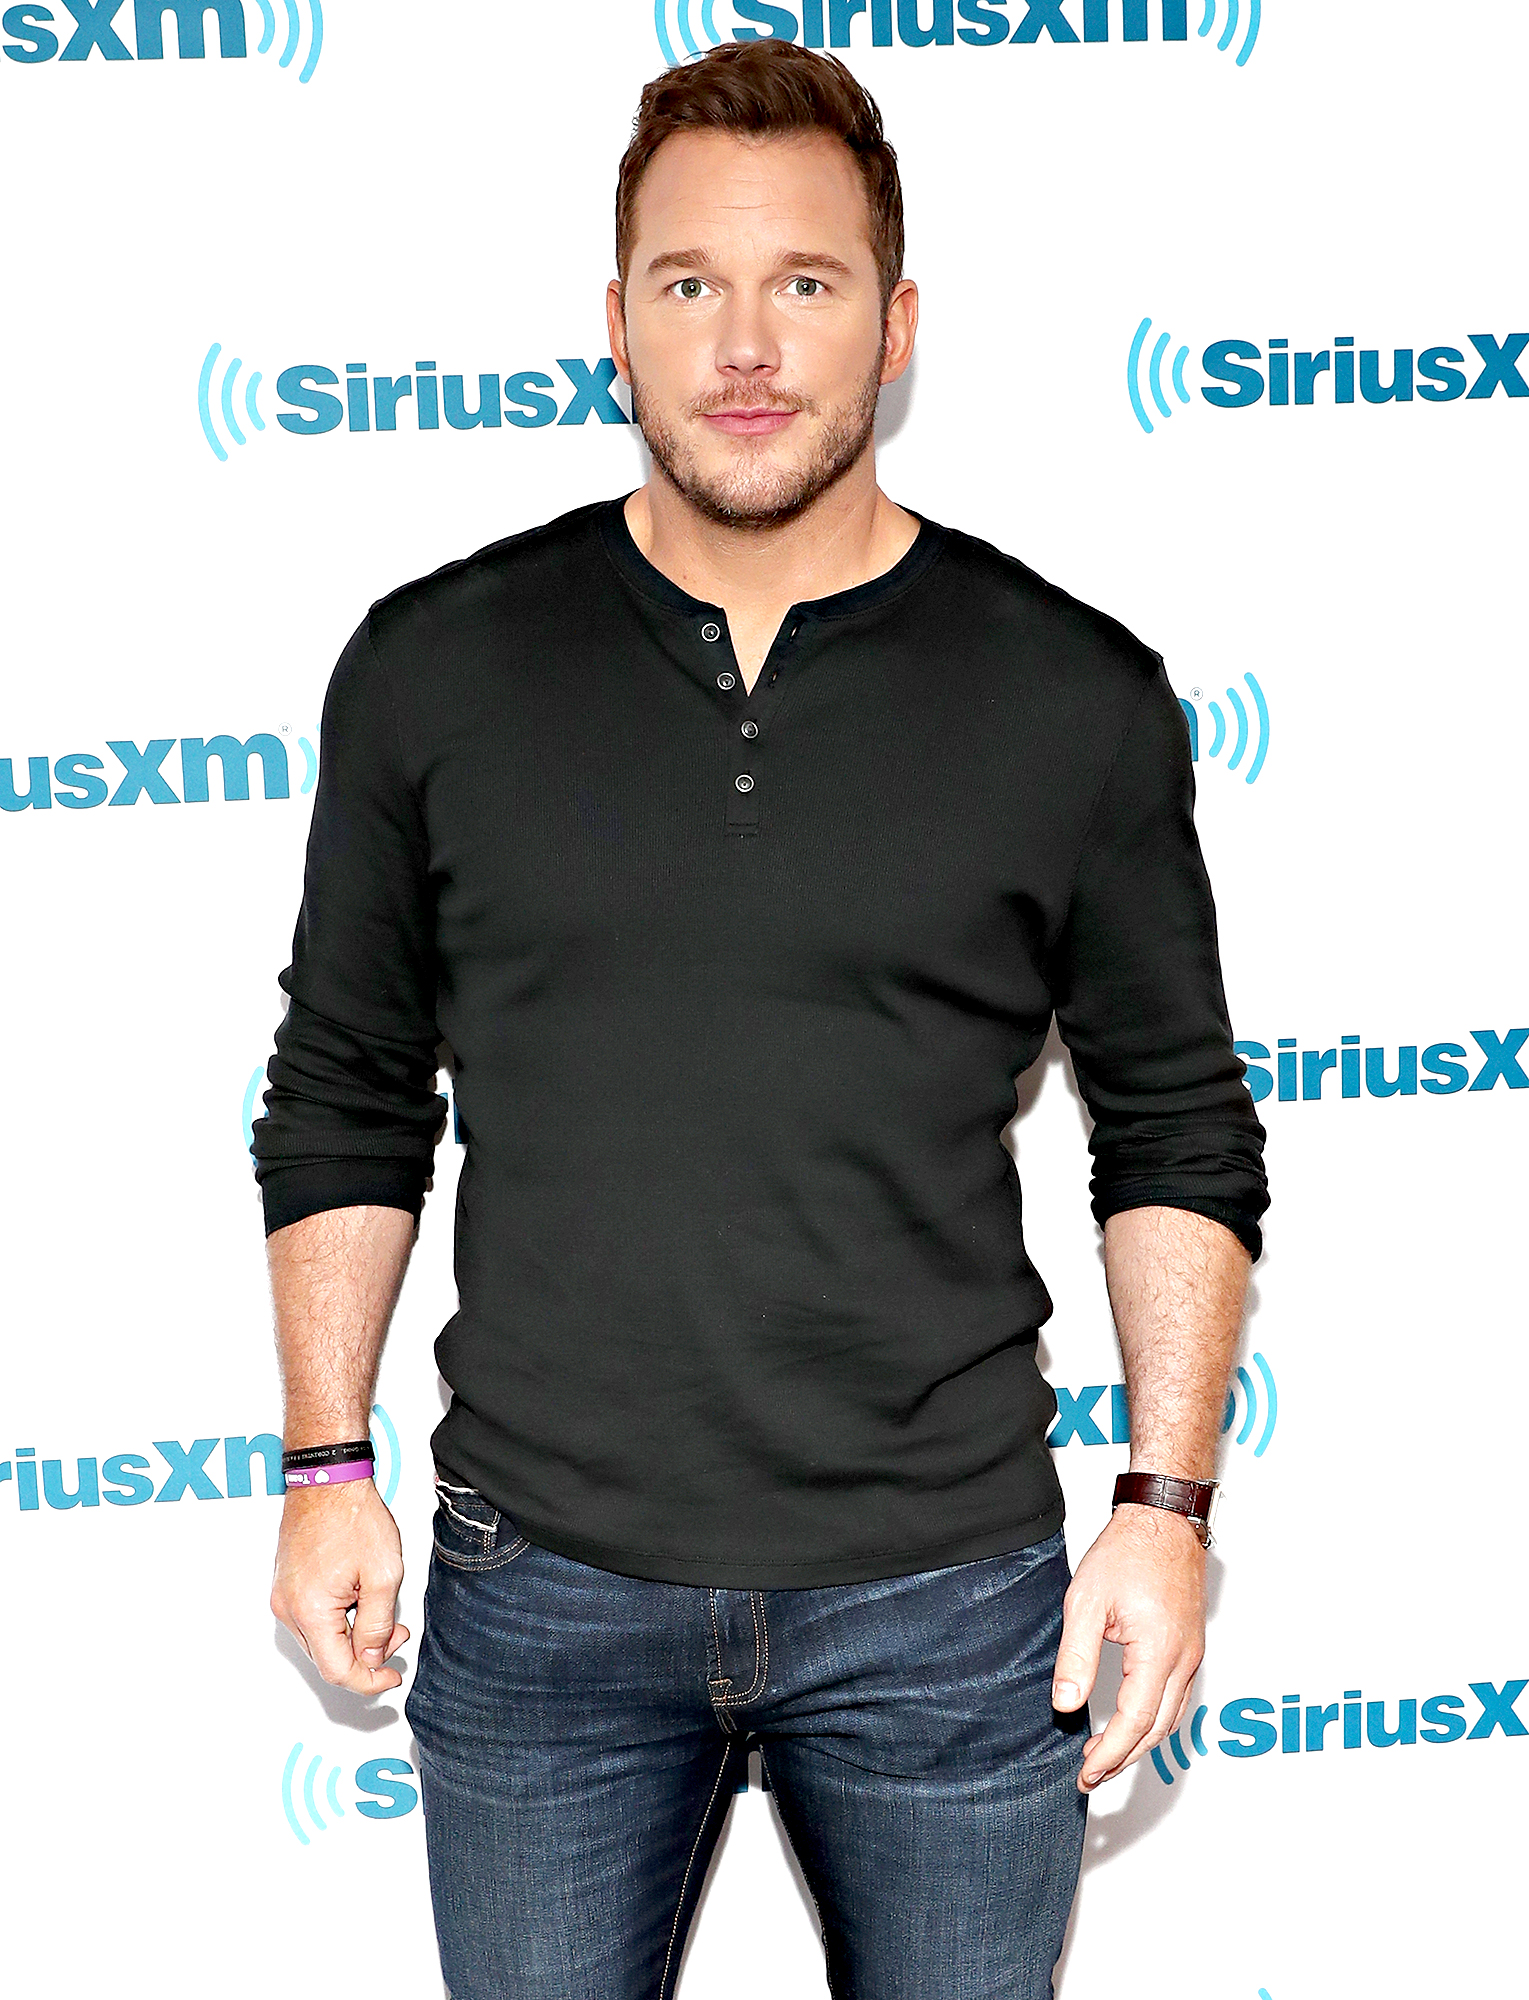 Chris-Pratt-diet - NEW YORK, NY – JUNE 14: Actor Chris Pratt takes part inÊSiriusXM's Town Hall with the cast of 'Jurassic World: Fallen Kingdom' at the SiriusXM Studios on June 14, 2018 in New York City. (Photo by Cindy Ord/Getty Images for SiriusXM)